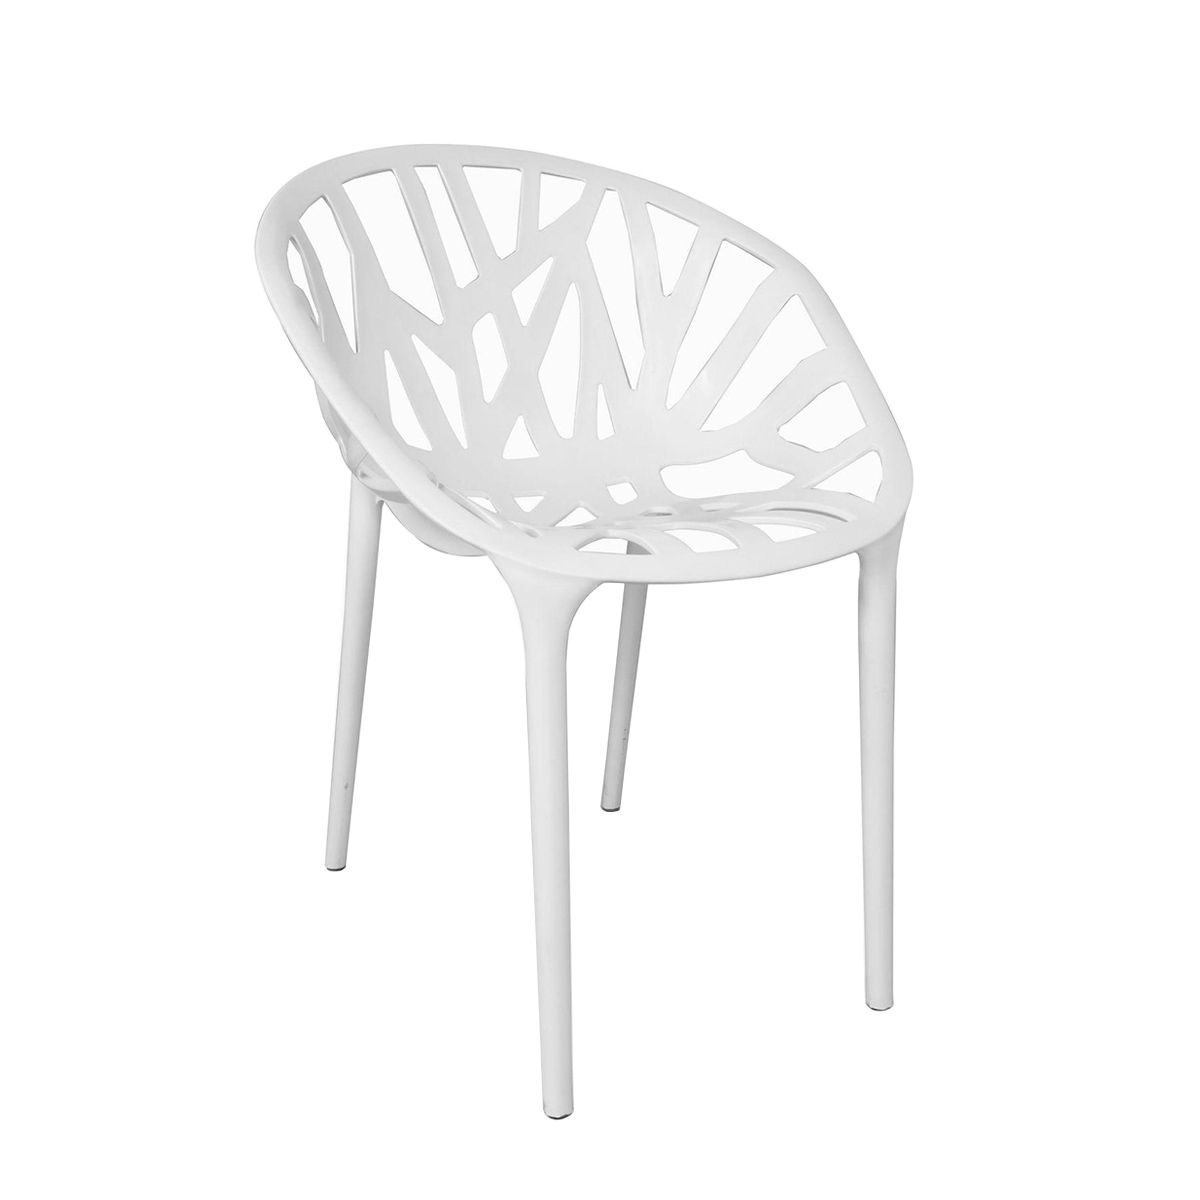 Tree Of Life Chair   White | Dotandbo.com Corner Or Additional Chairs For  Dining